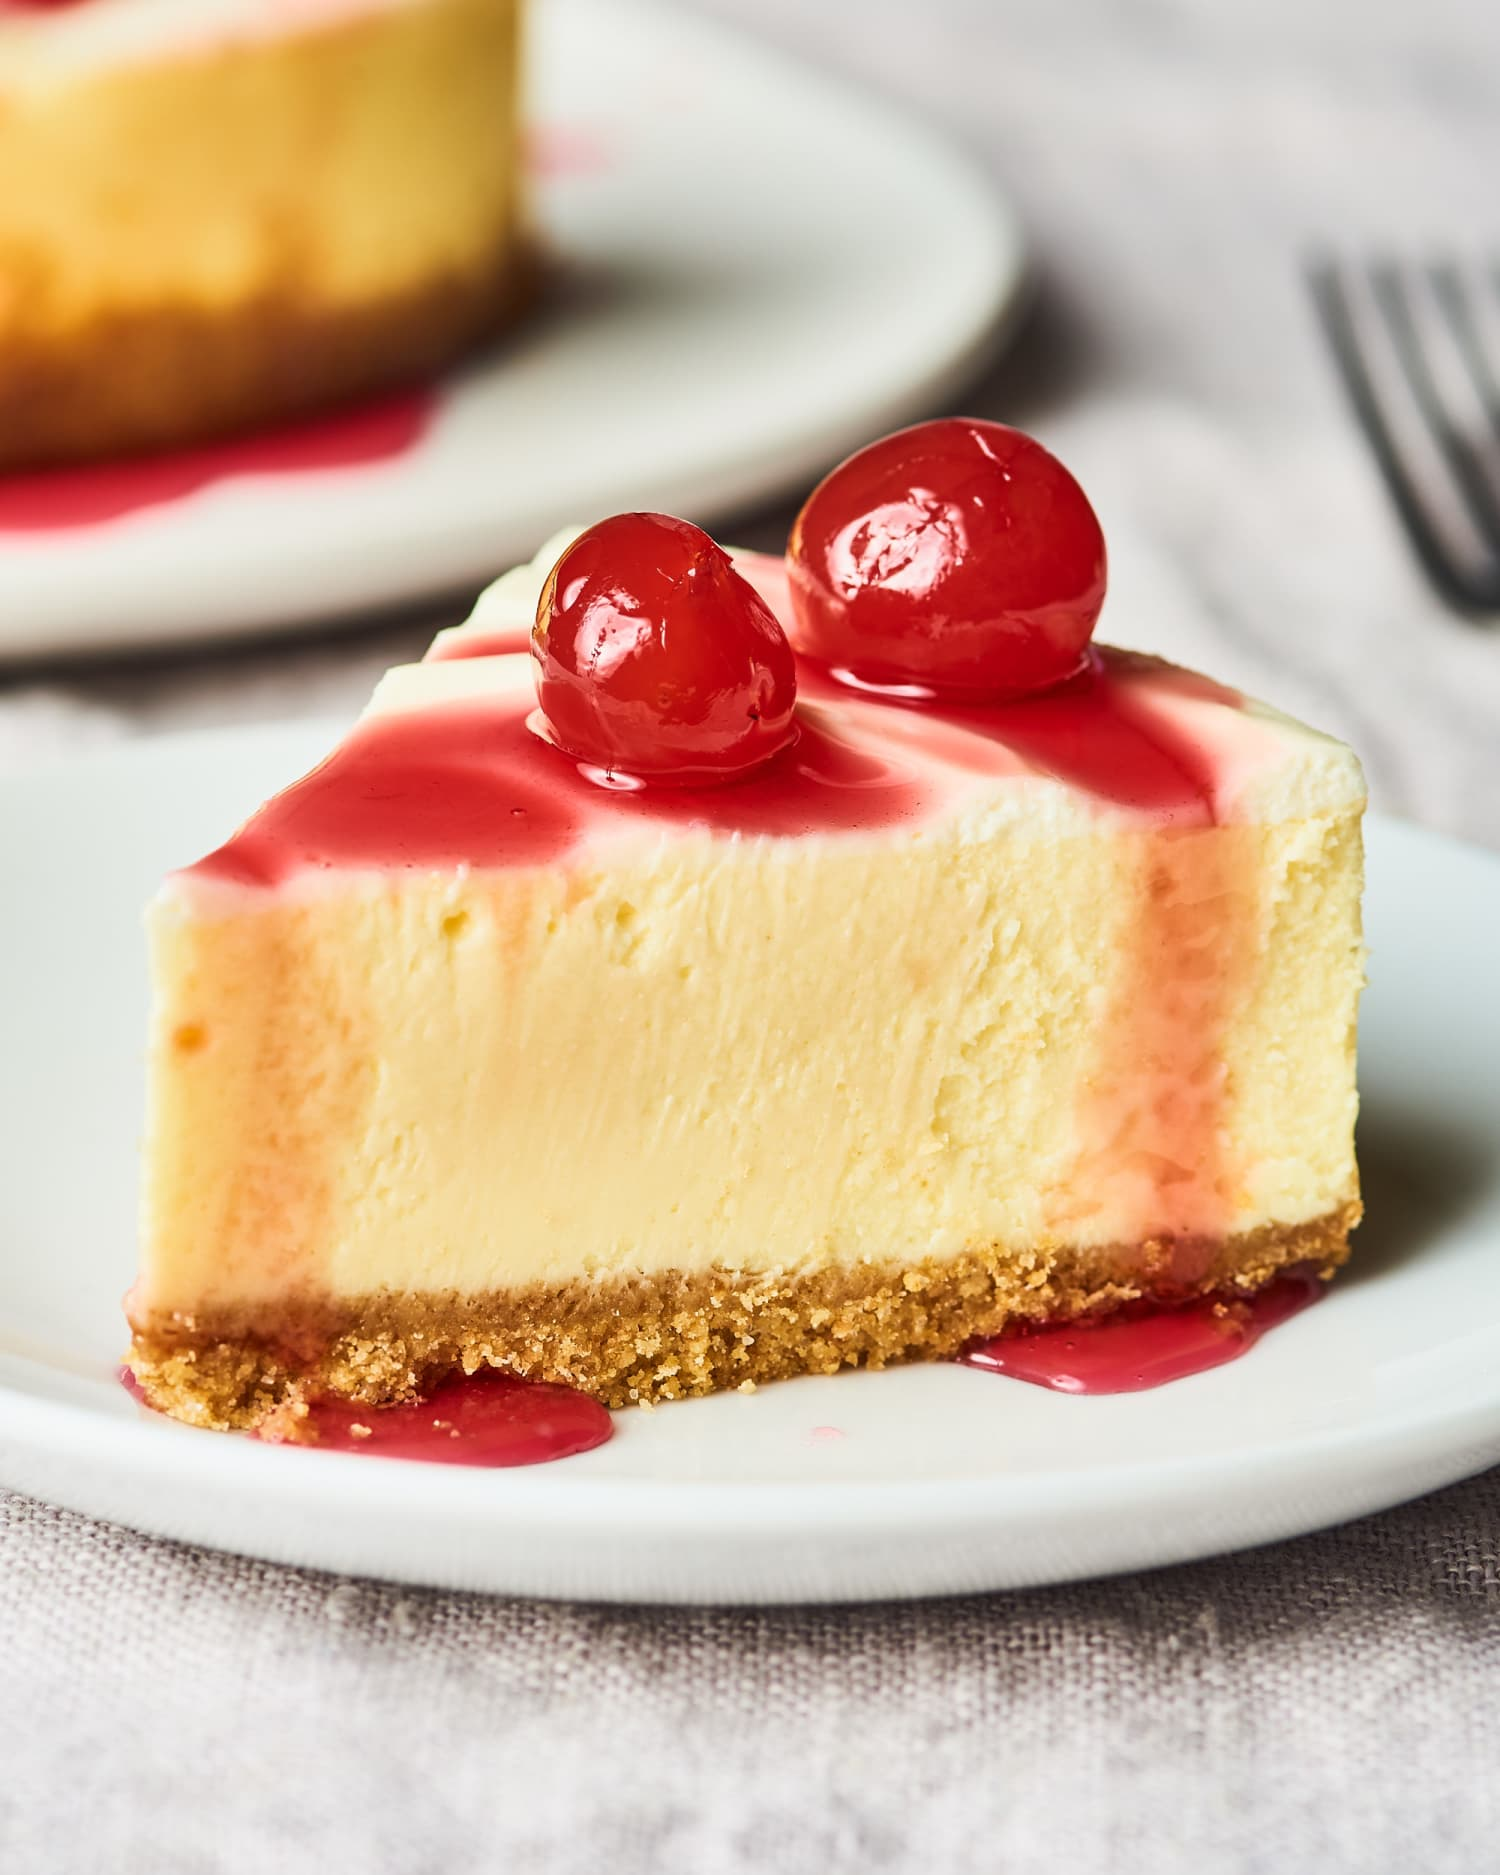 3 Store-Bought Cheesecakes That Are (Almost) Better than Homemade